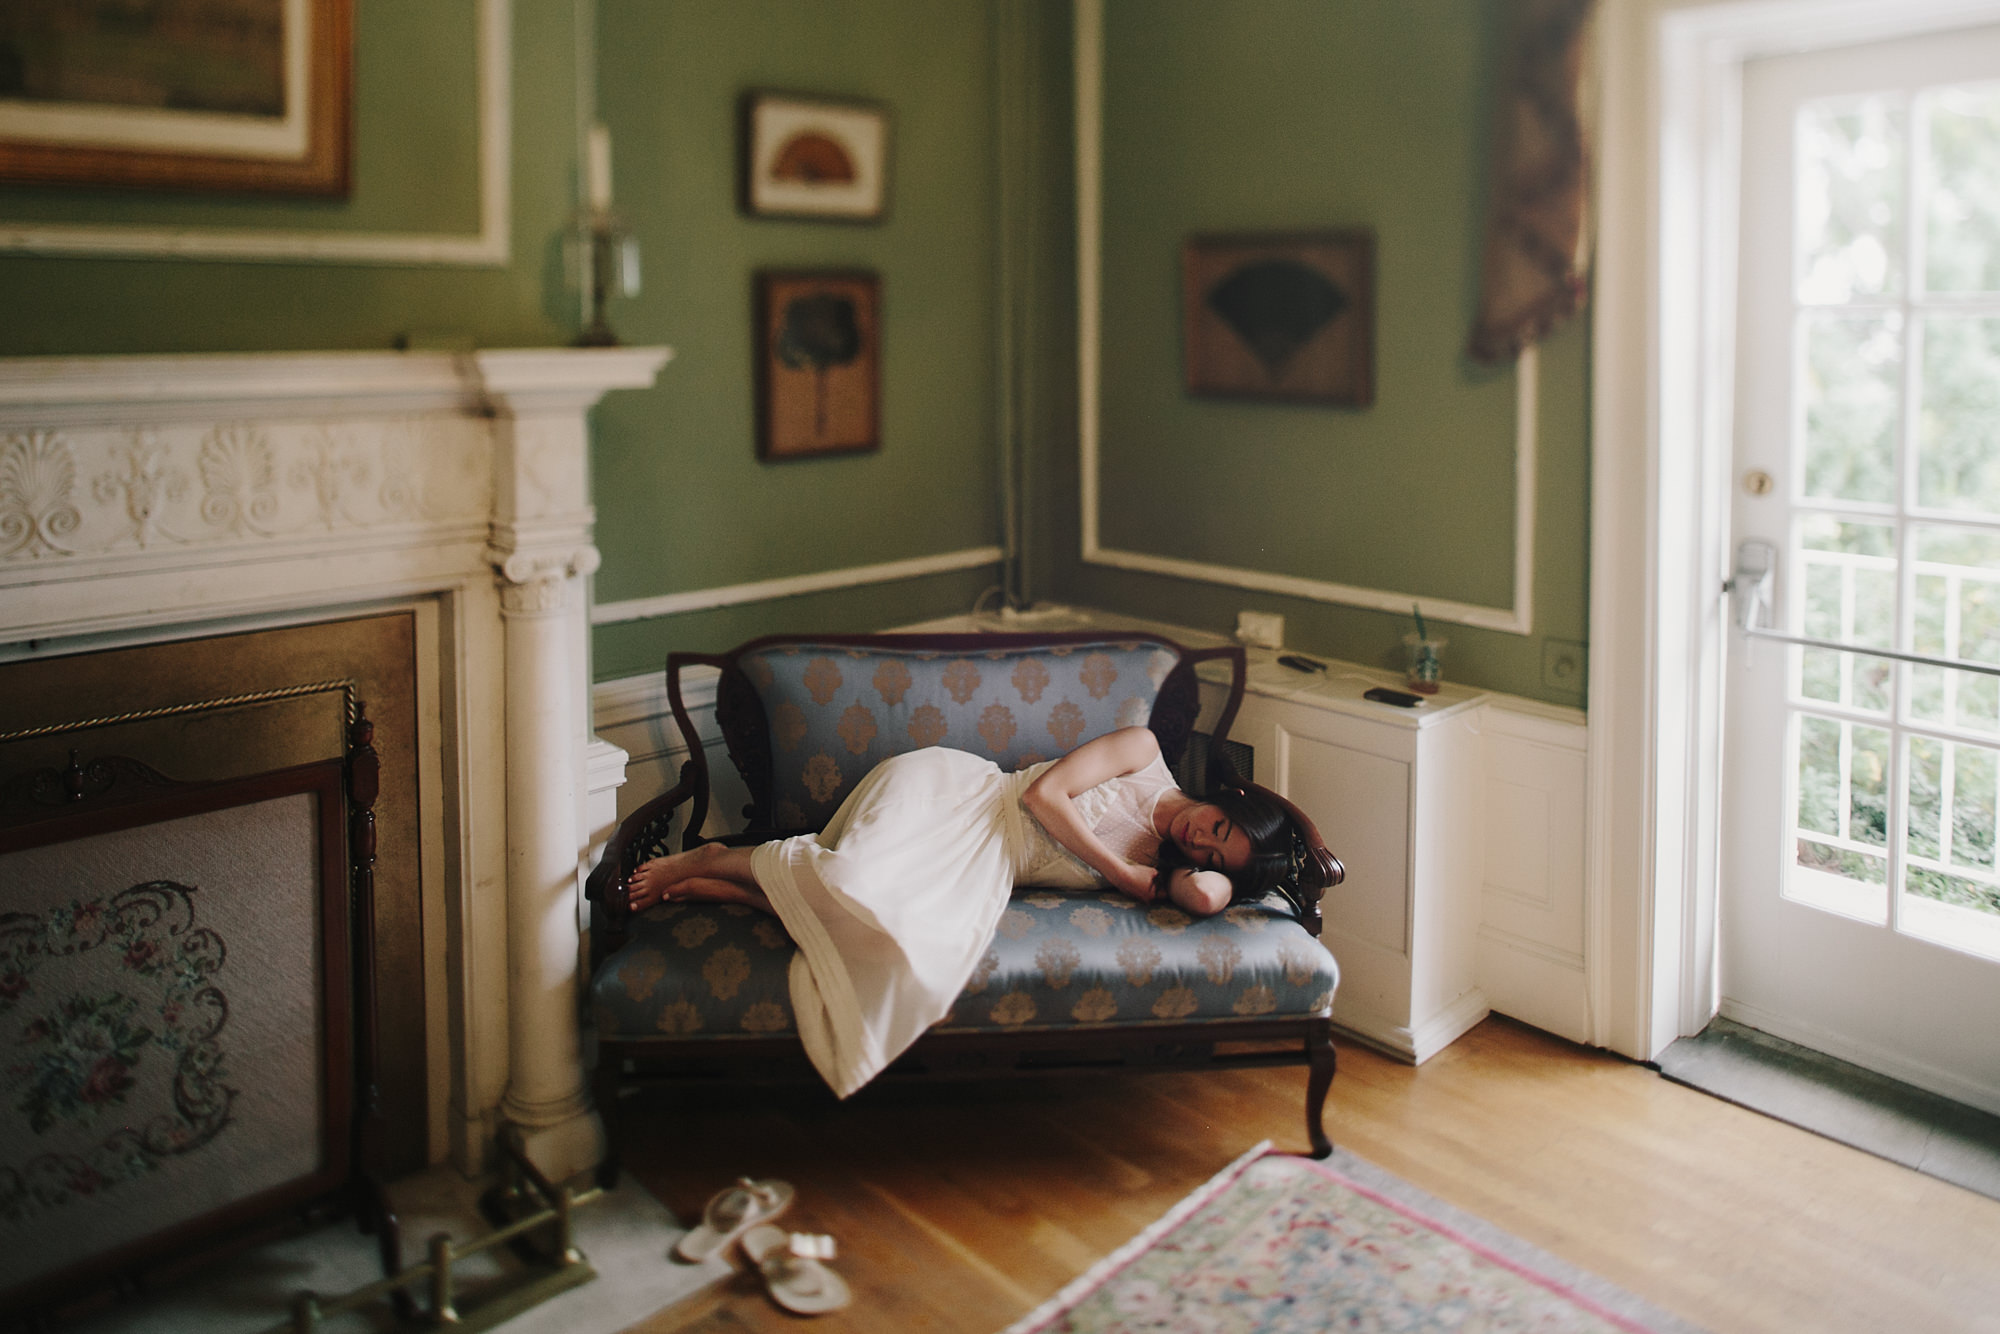 Bride rests before ceremony on silk loveseat - photo by James Moes - Missouri